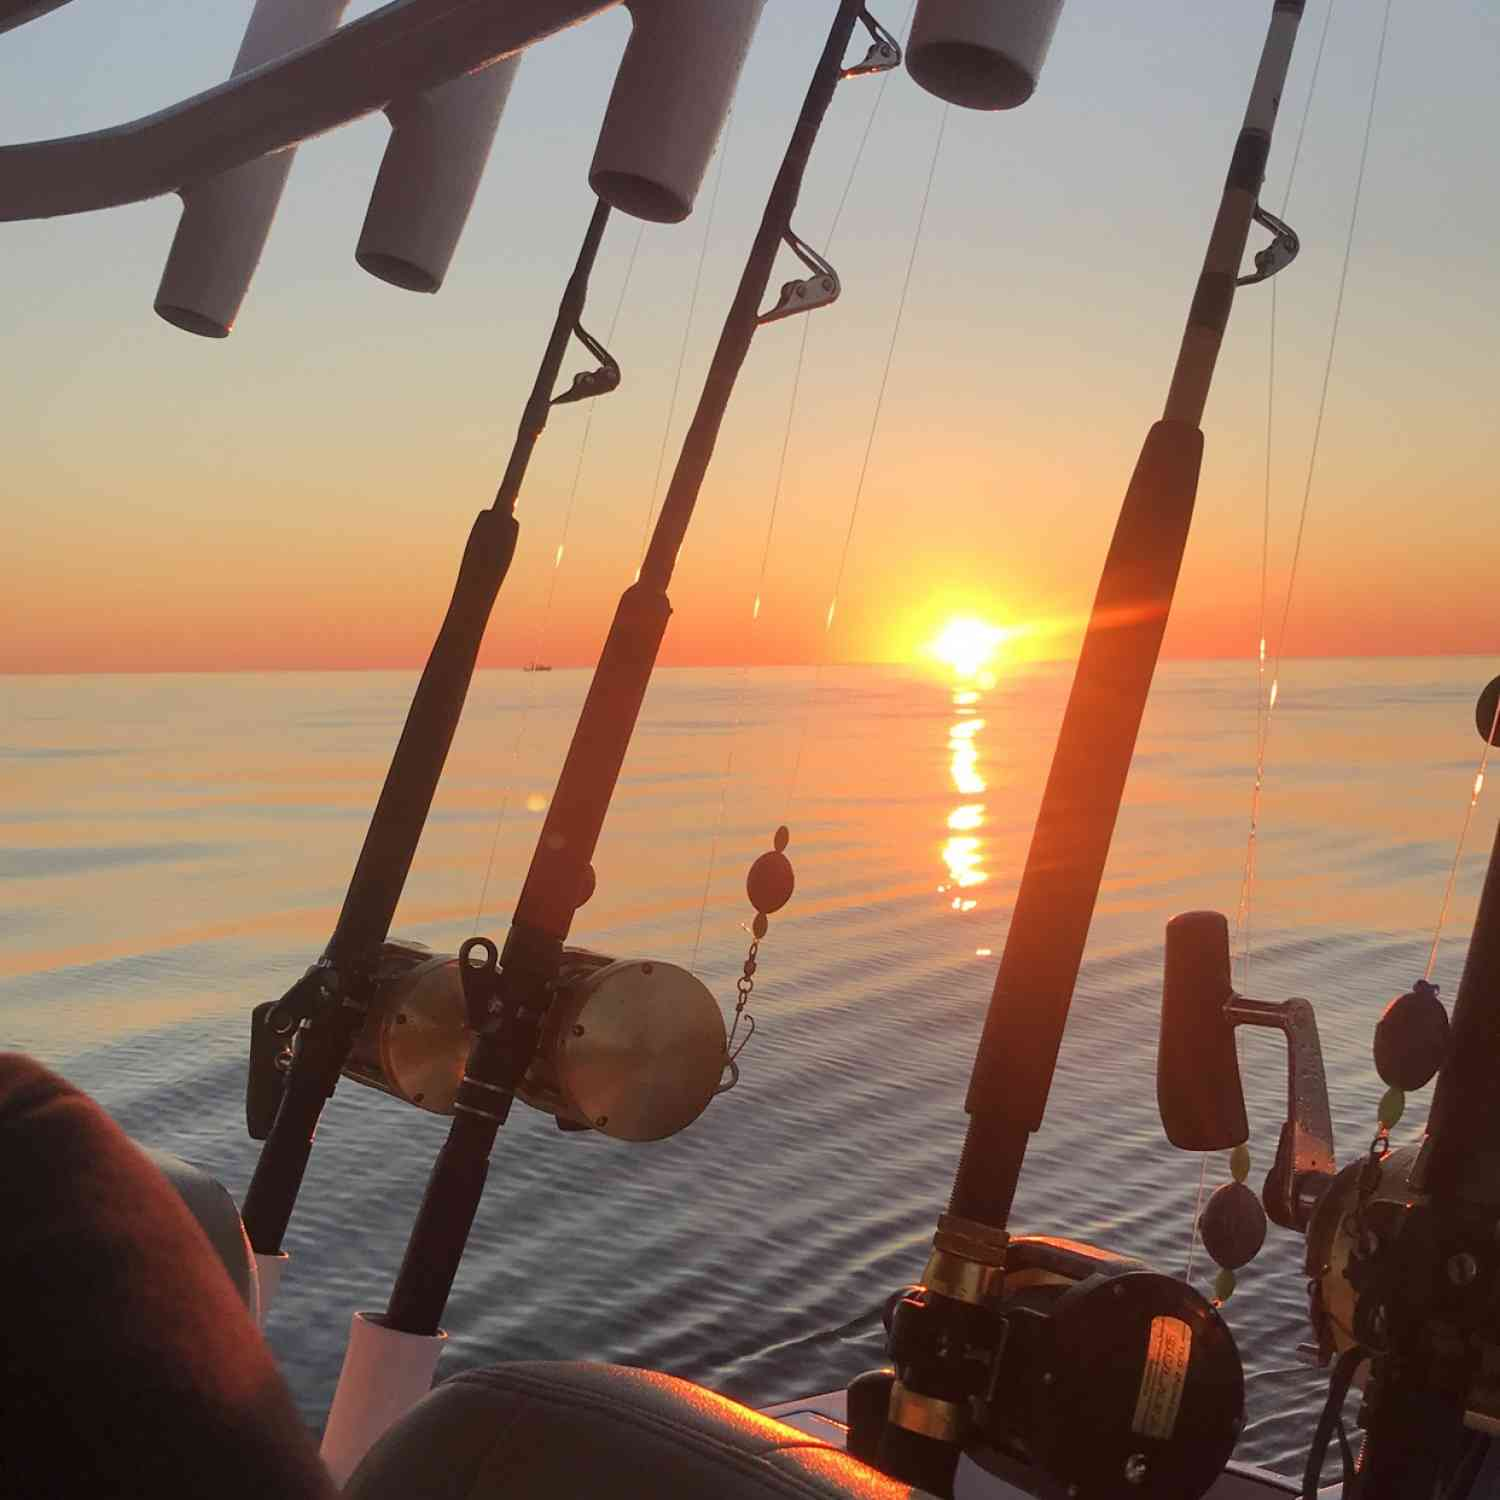 Title: Sunrise at sea - On board their Sportsman Open 312 Center Console - Location: Portland Maine. Participating in the Photo Contest #SportsmanAugust2018